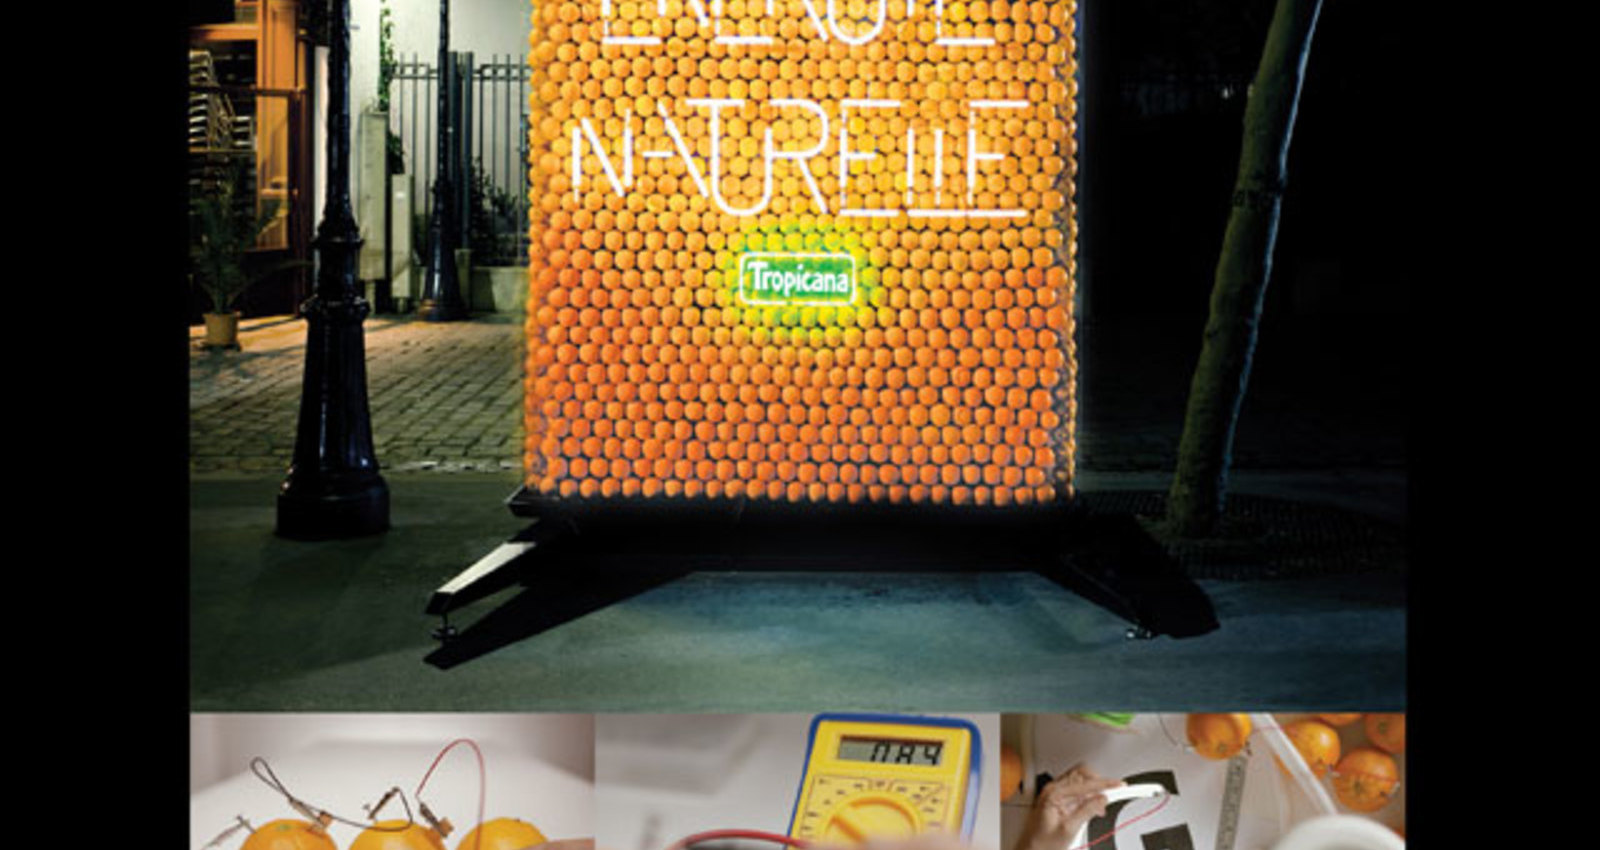 Billboard powered by oranges